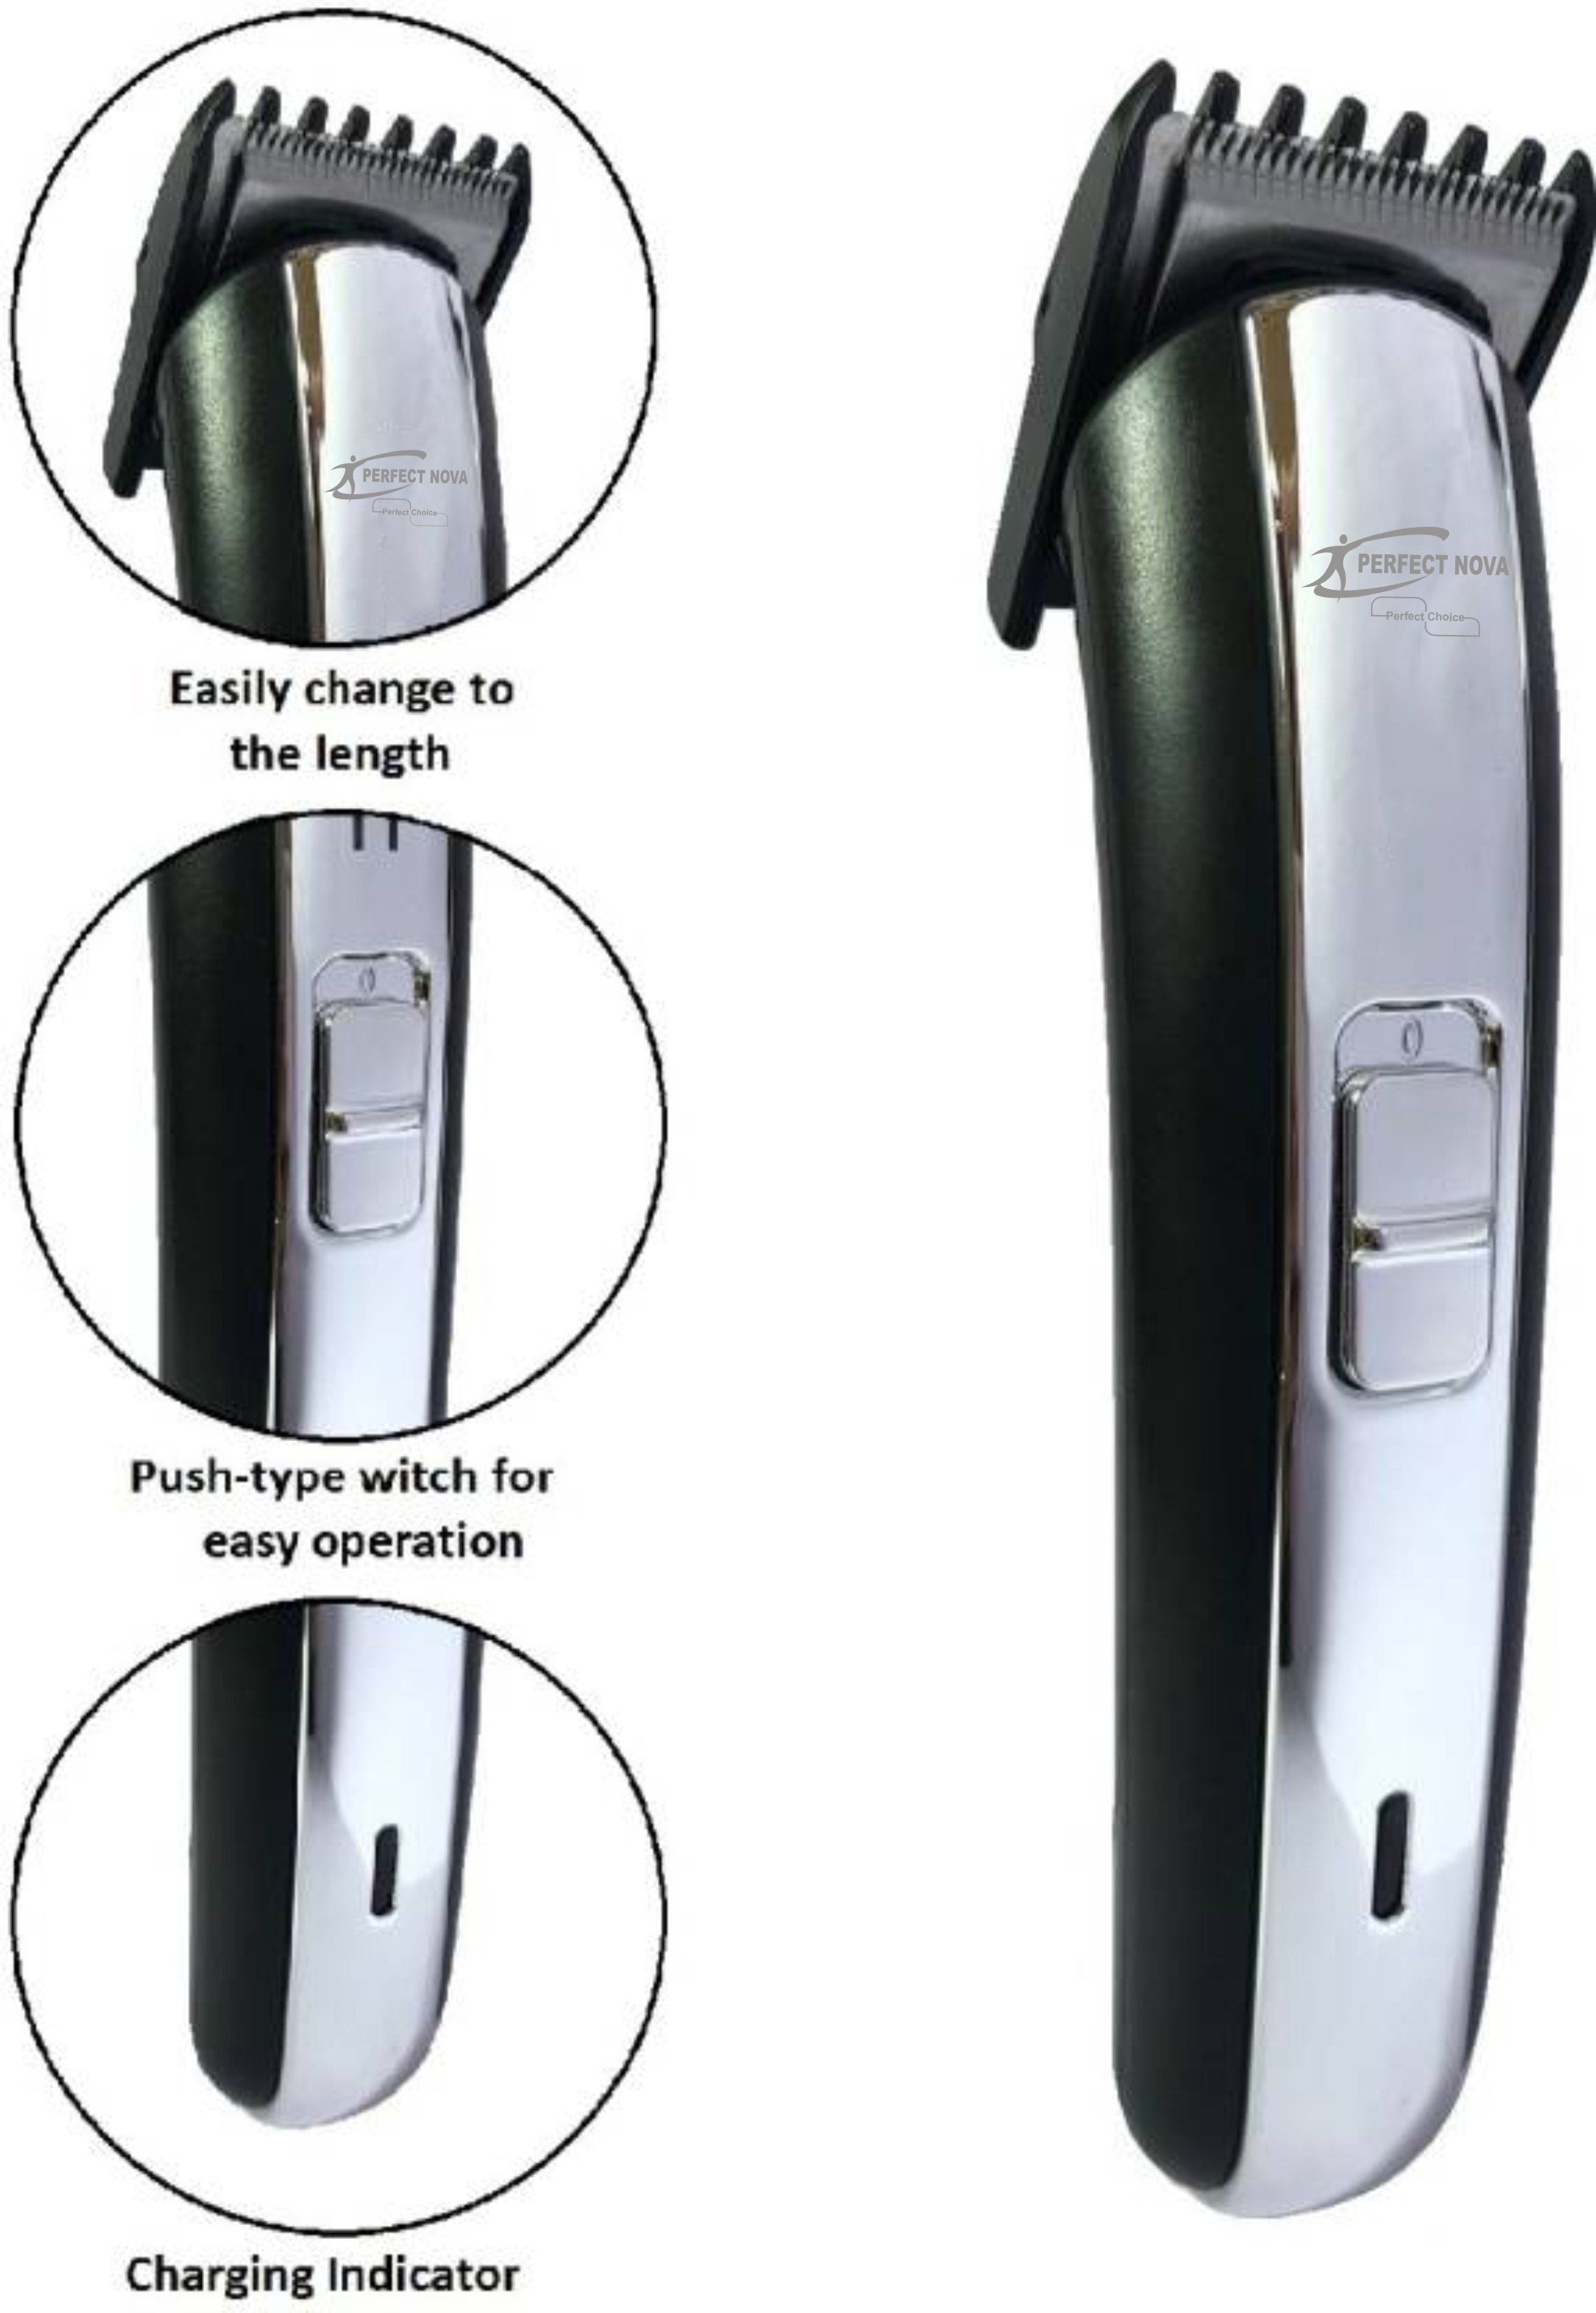 Perfect Nova (Device Of Man) PN-1102 Runtime: 45 Min Trimmer For Men (Silver)